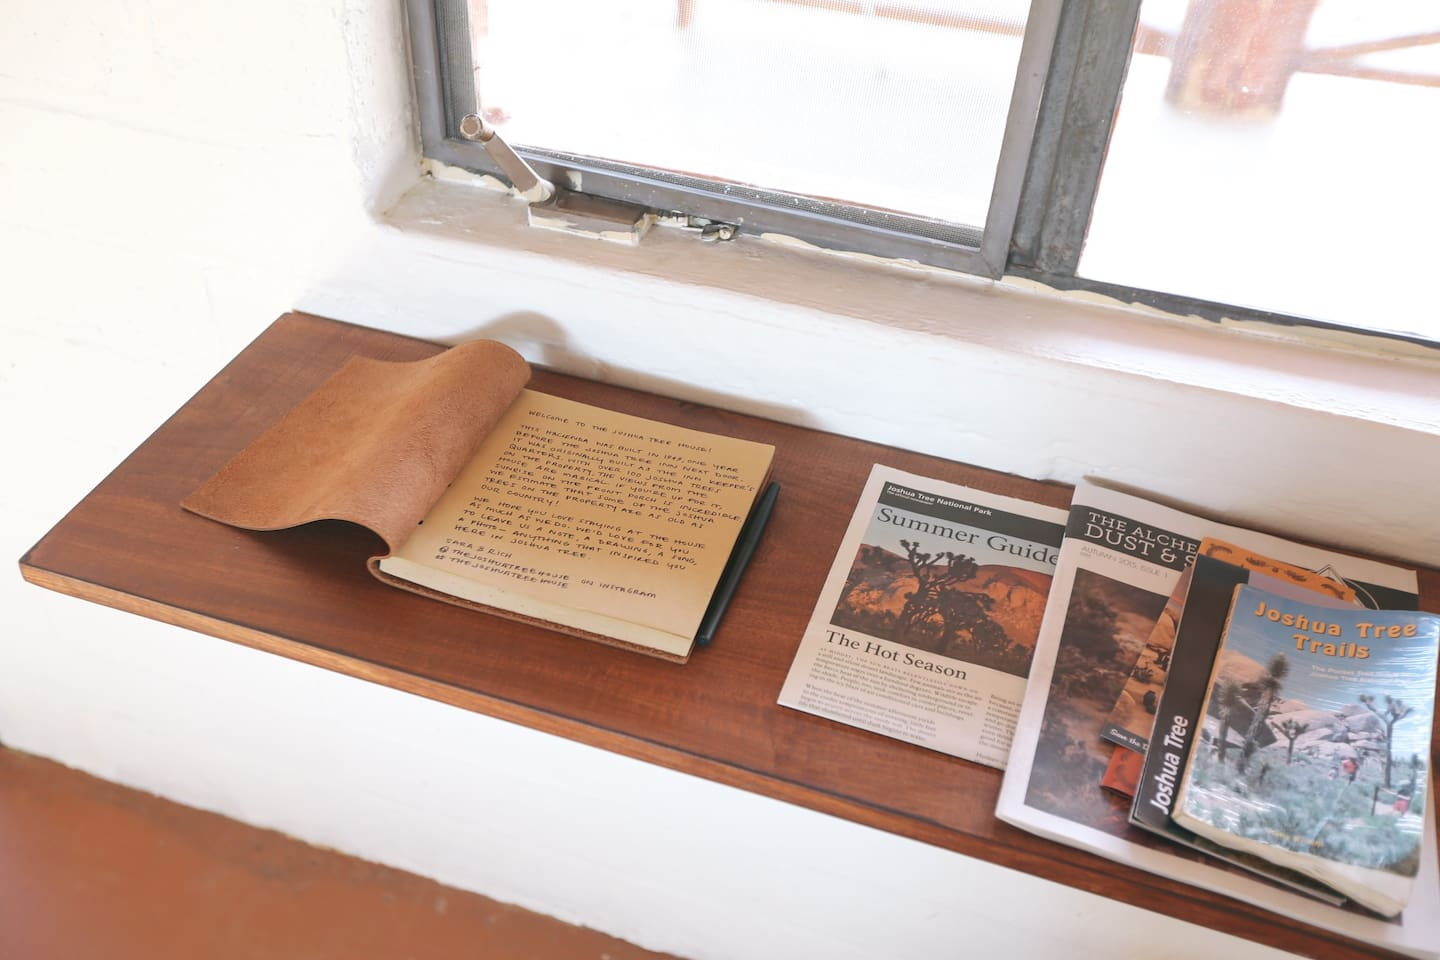 Guest Book and local Joshua Tree information